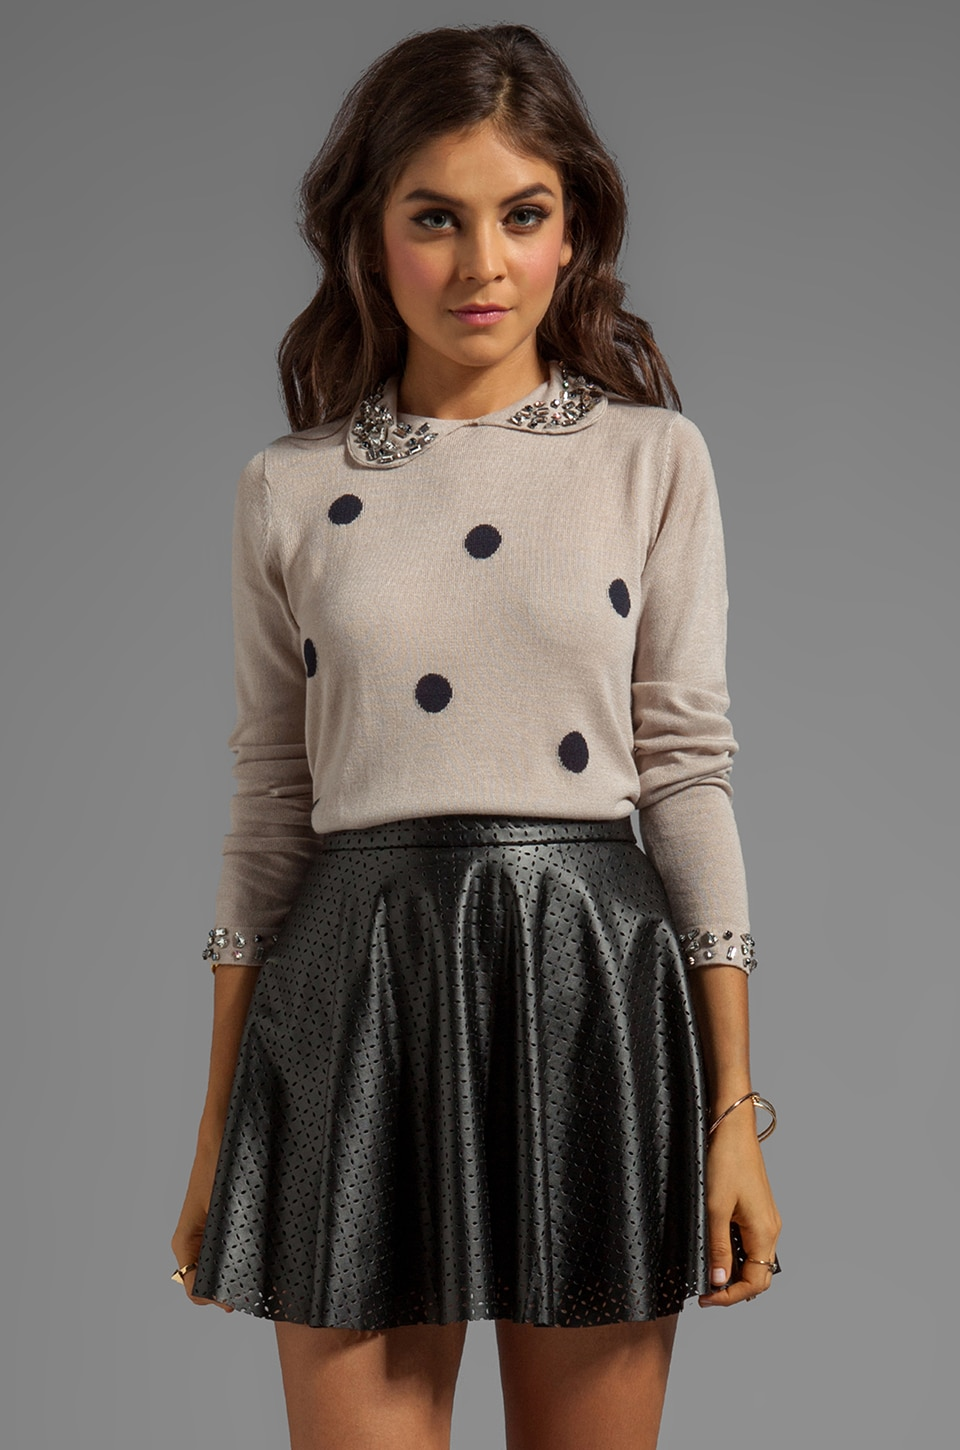 Paper Crown by Lauren Conrad 5th Avenue Sweater in Jewel Navy Polka Dot